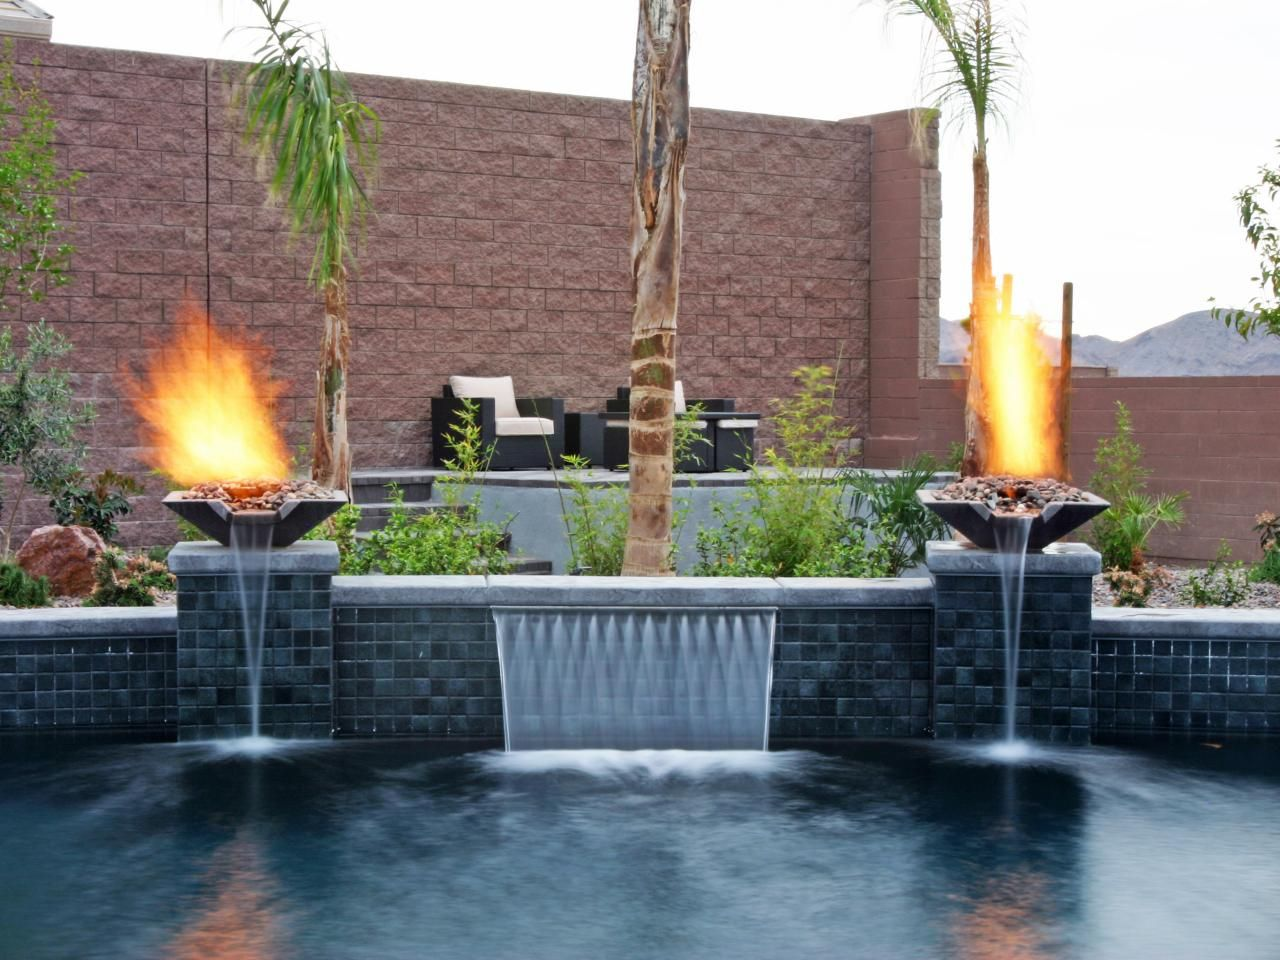 Tropical Pool With Waterfall And Fire Feature Backyard Pool Designs Backyard Pool Pool Waterfall